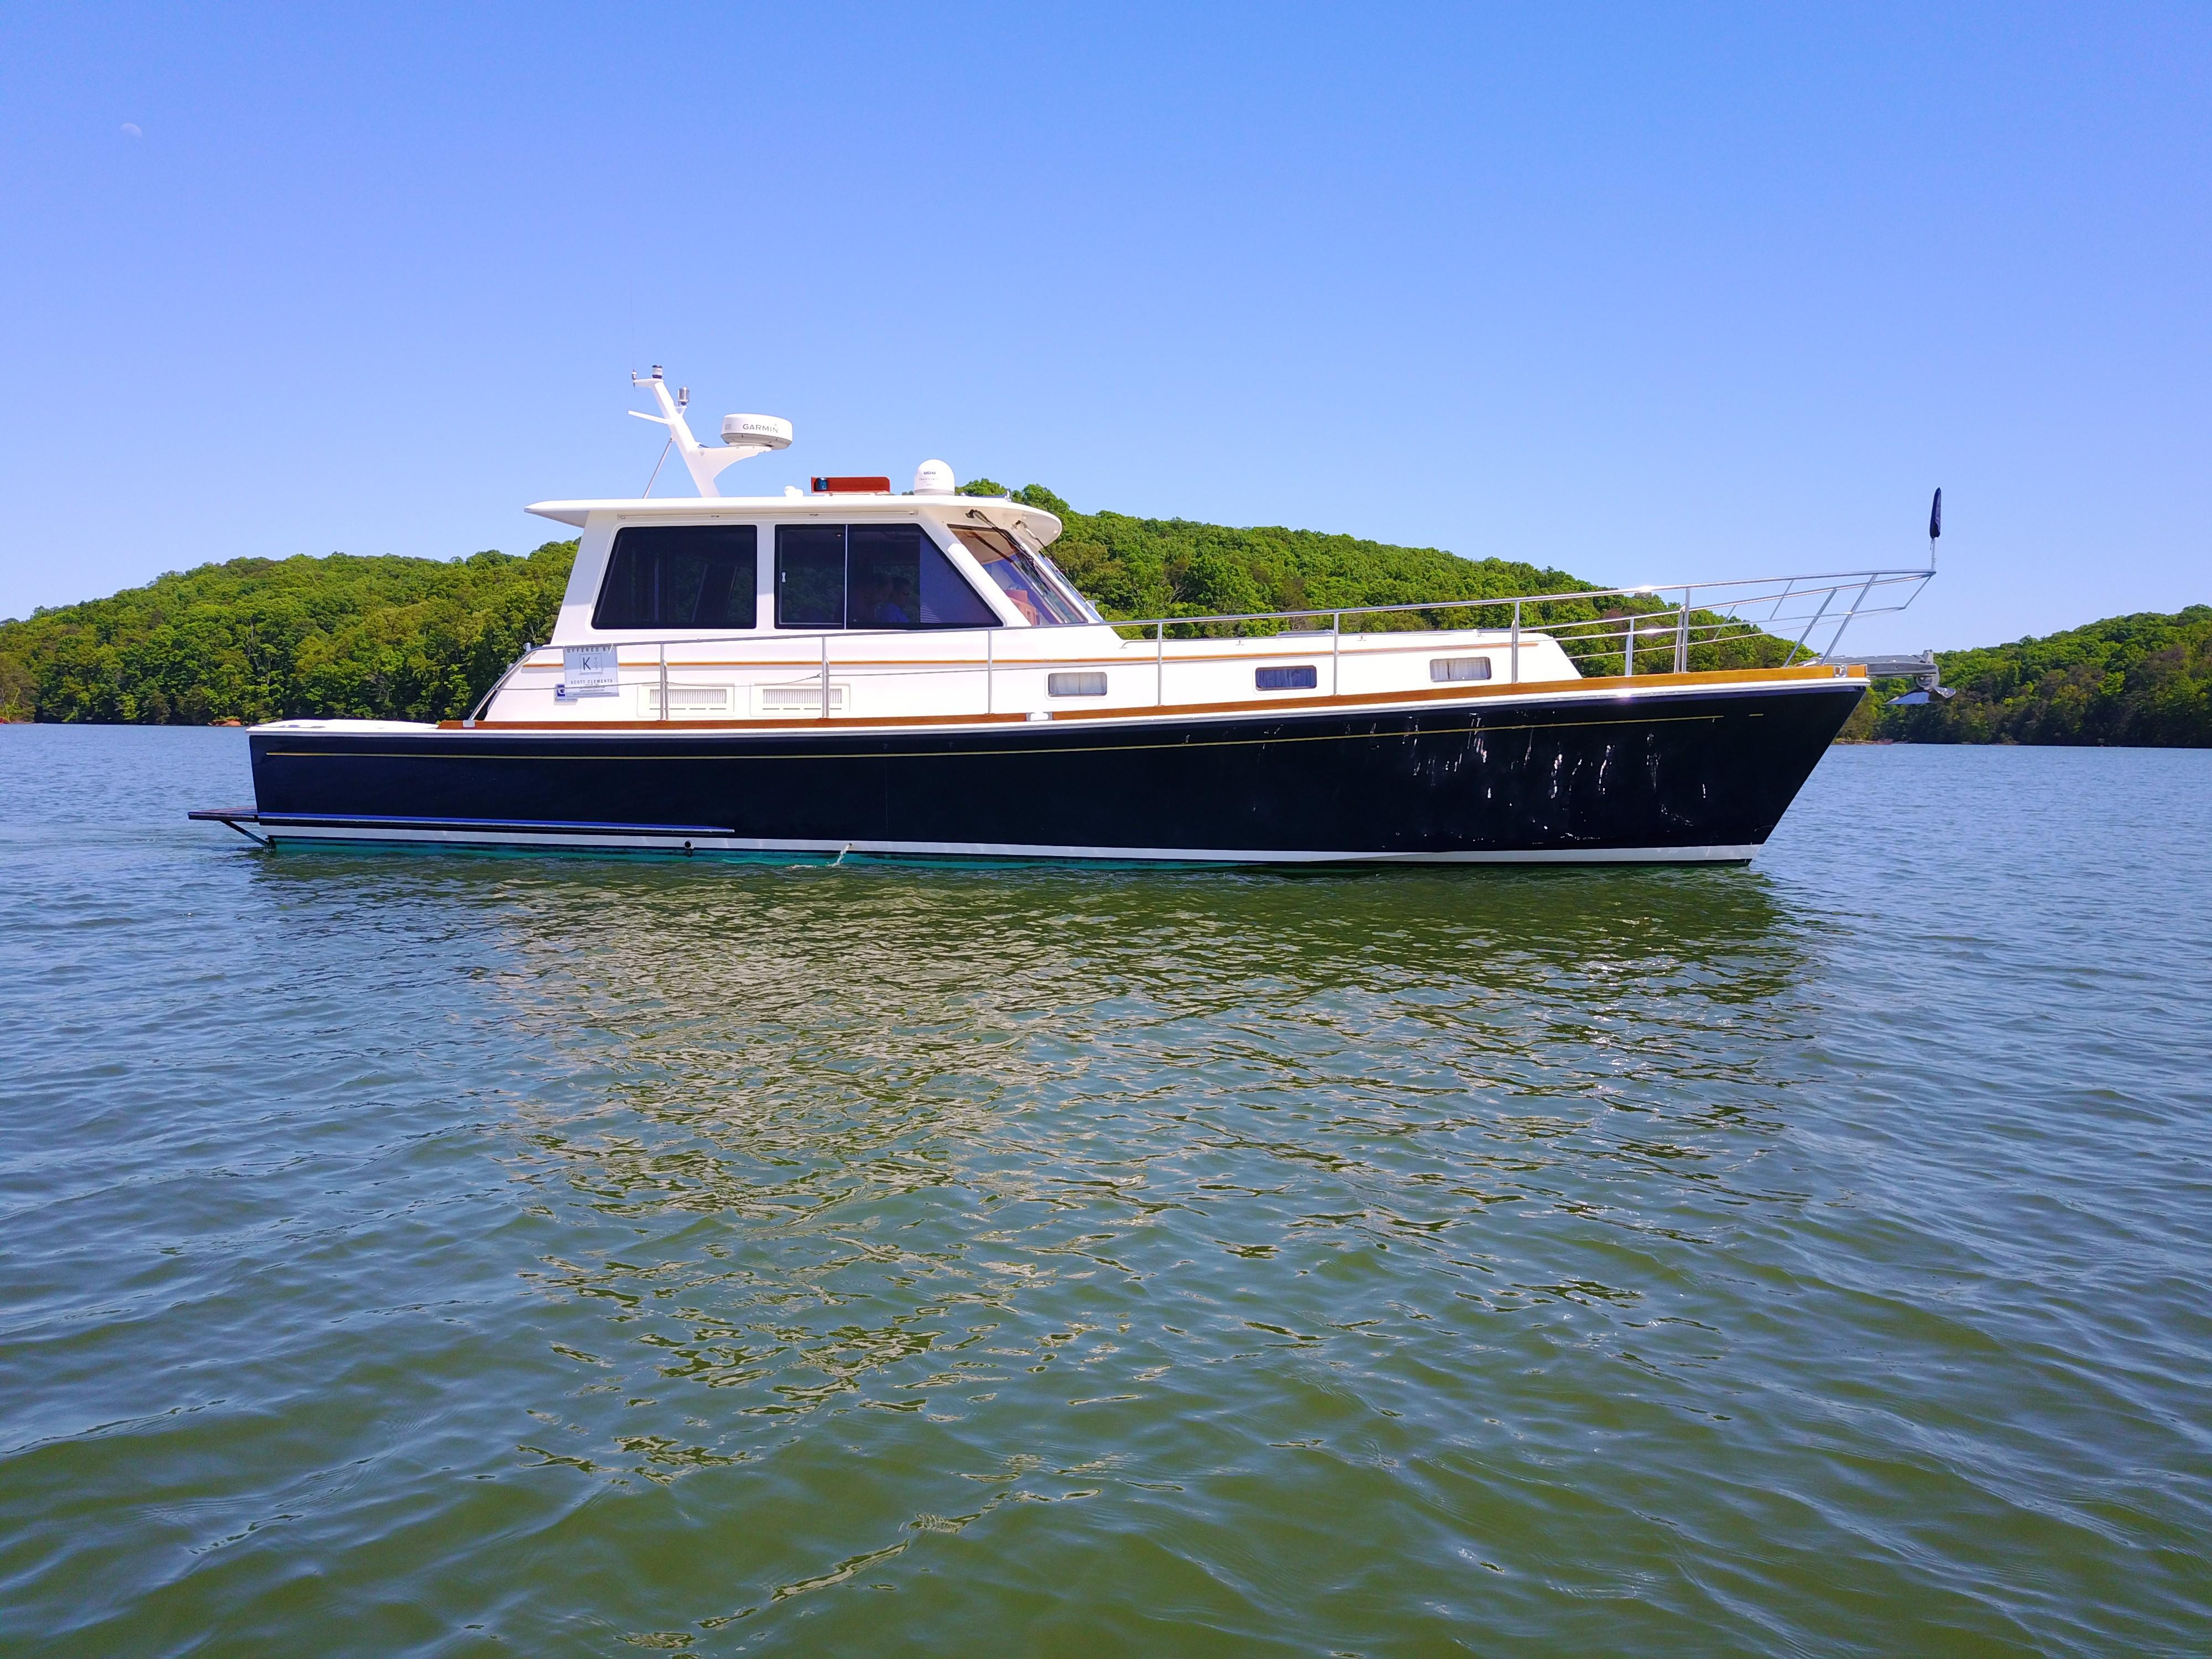 2006 grand banks 43 eastbay sx power boat for sale www yachtworld com